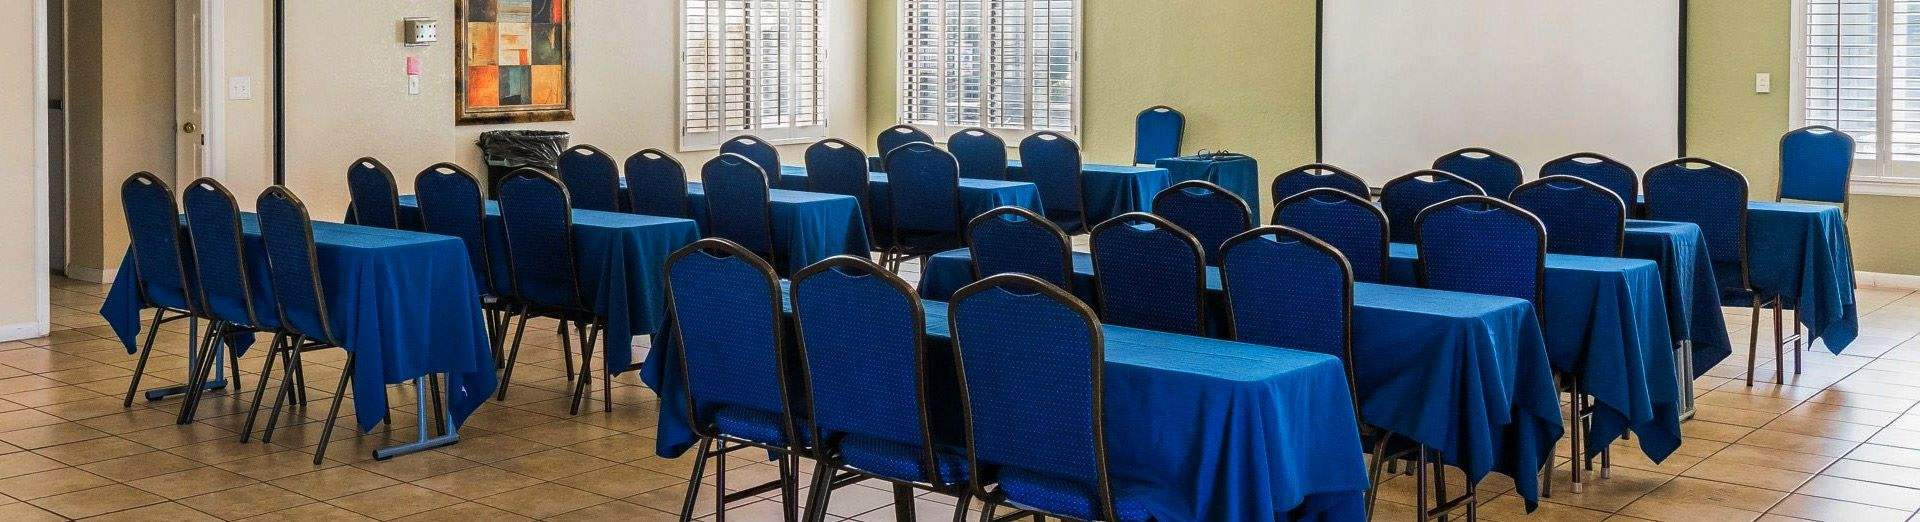 Meetings & Events at Chase Suite Hotel El Paso Texas